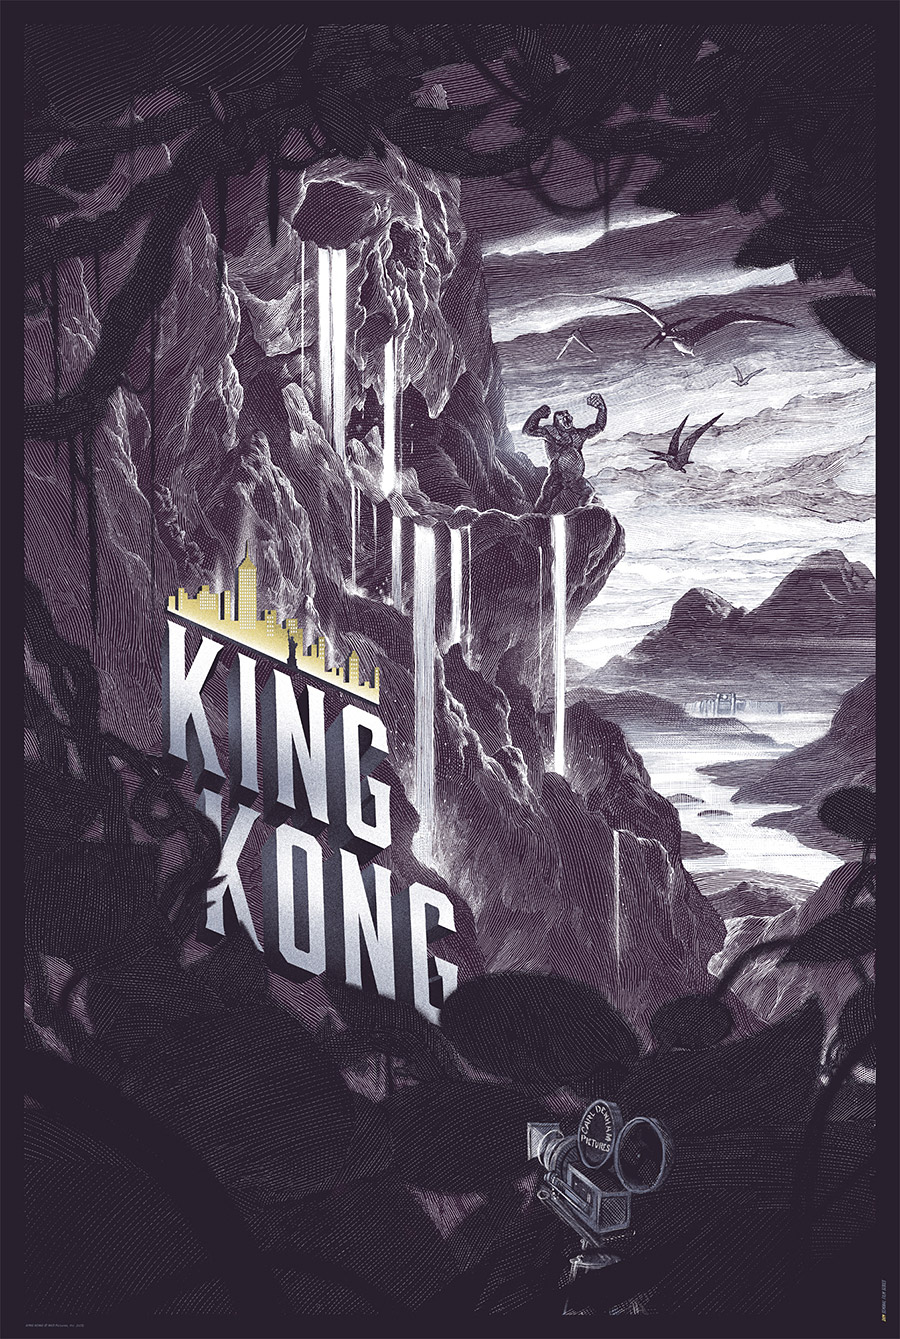 King Kong Canvas Poster from Nicolas Delort Variant